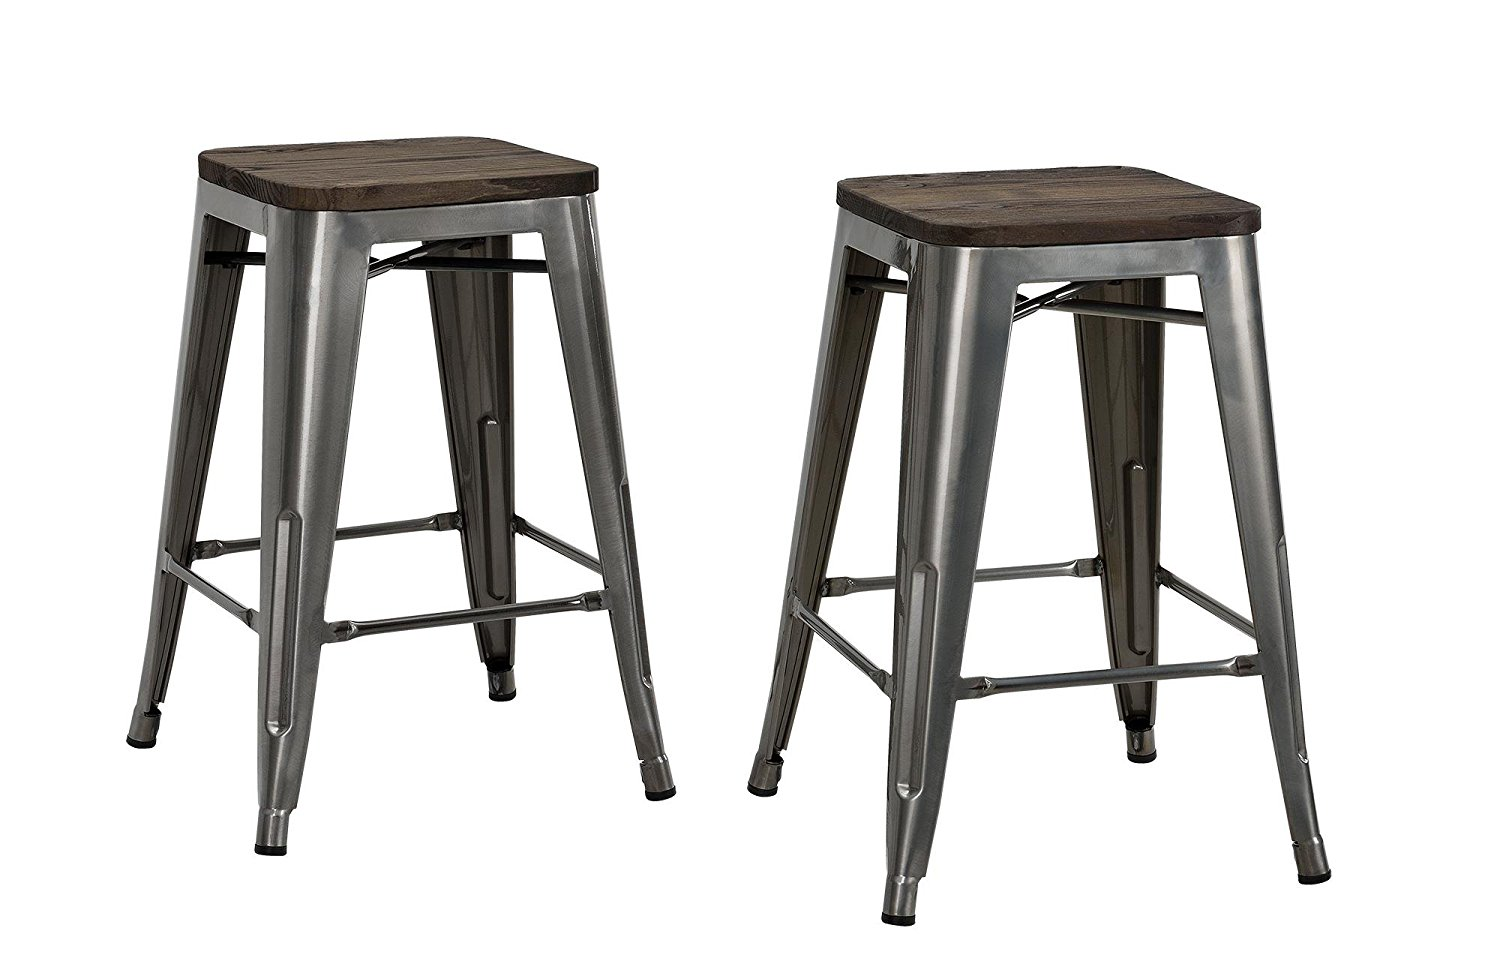 Bar Stools Be Our Guest